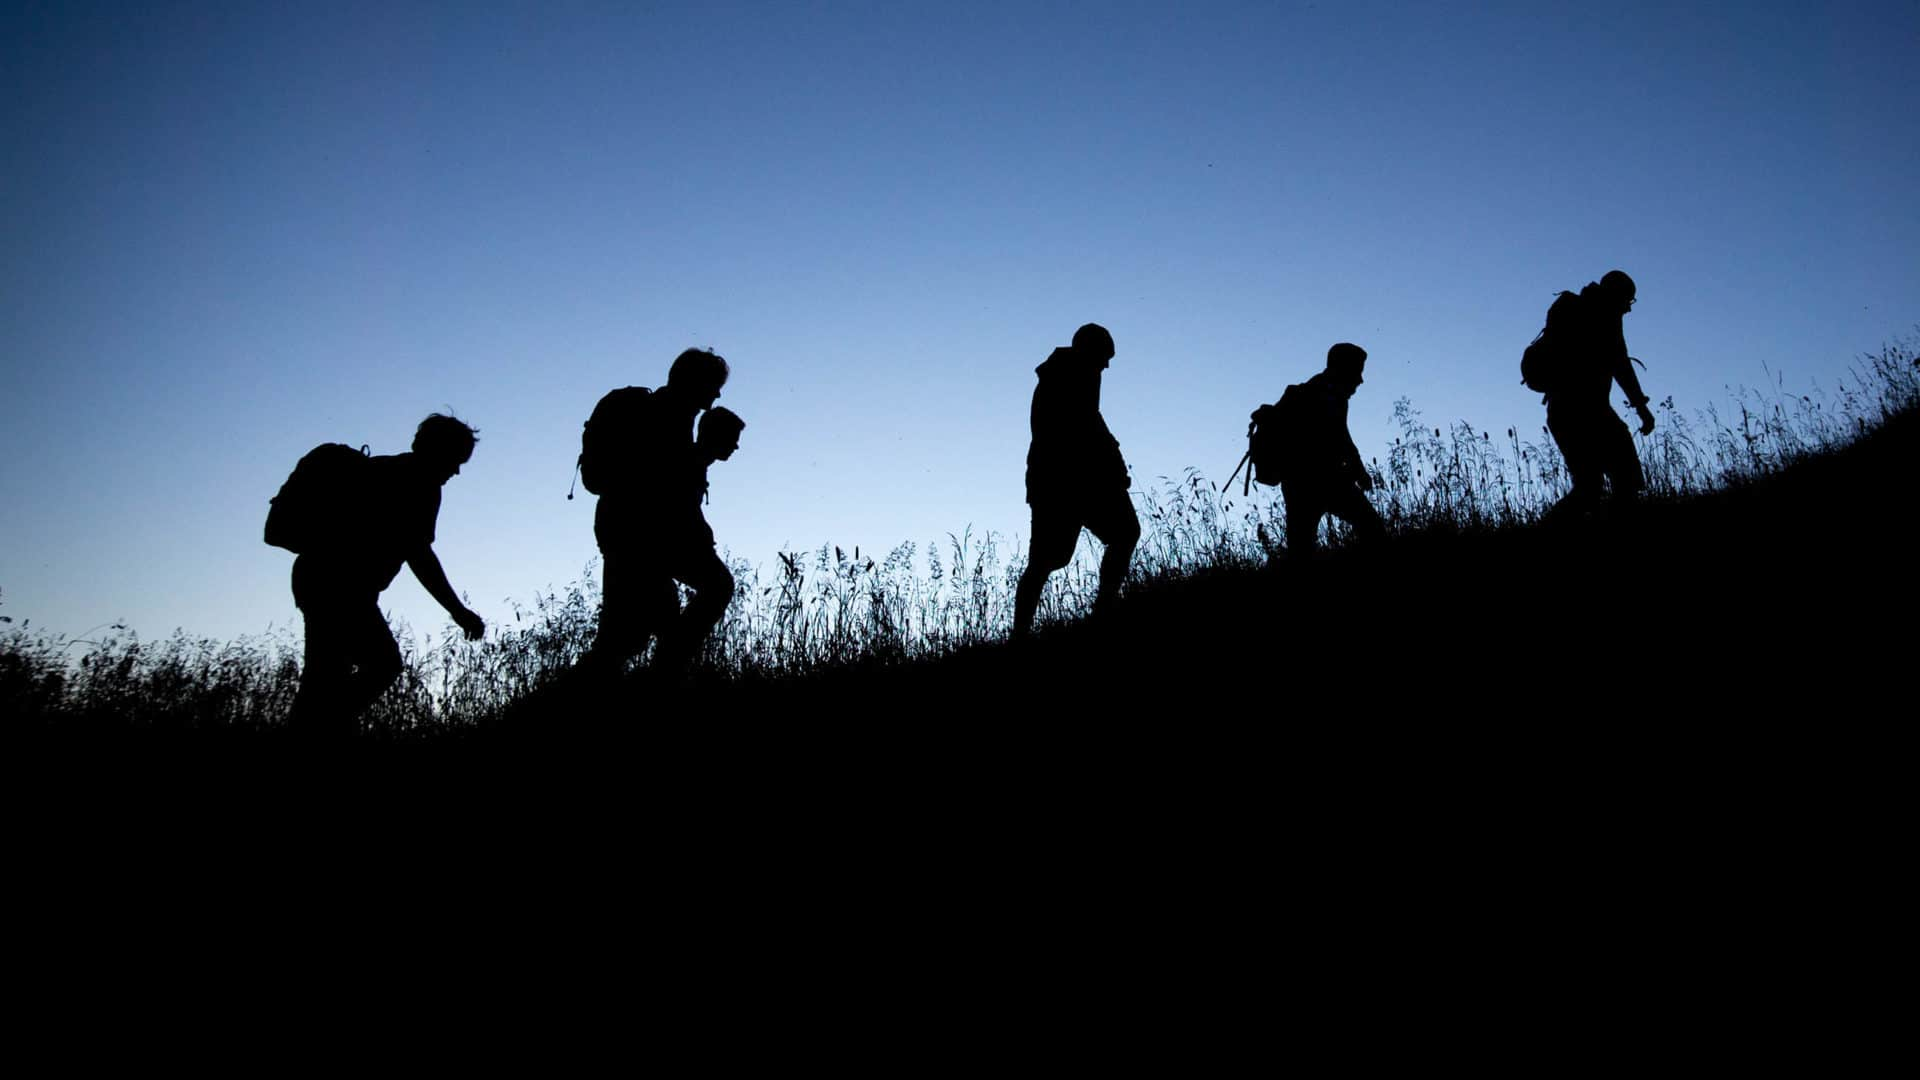 People climbing up a hill